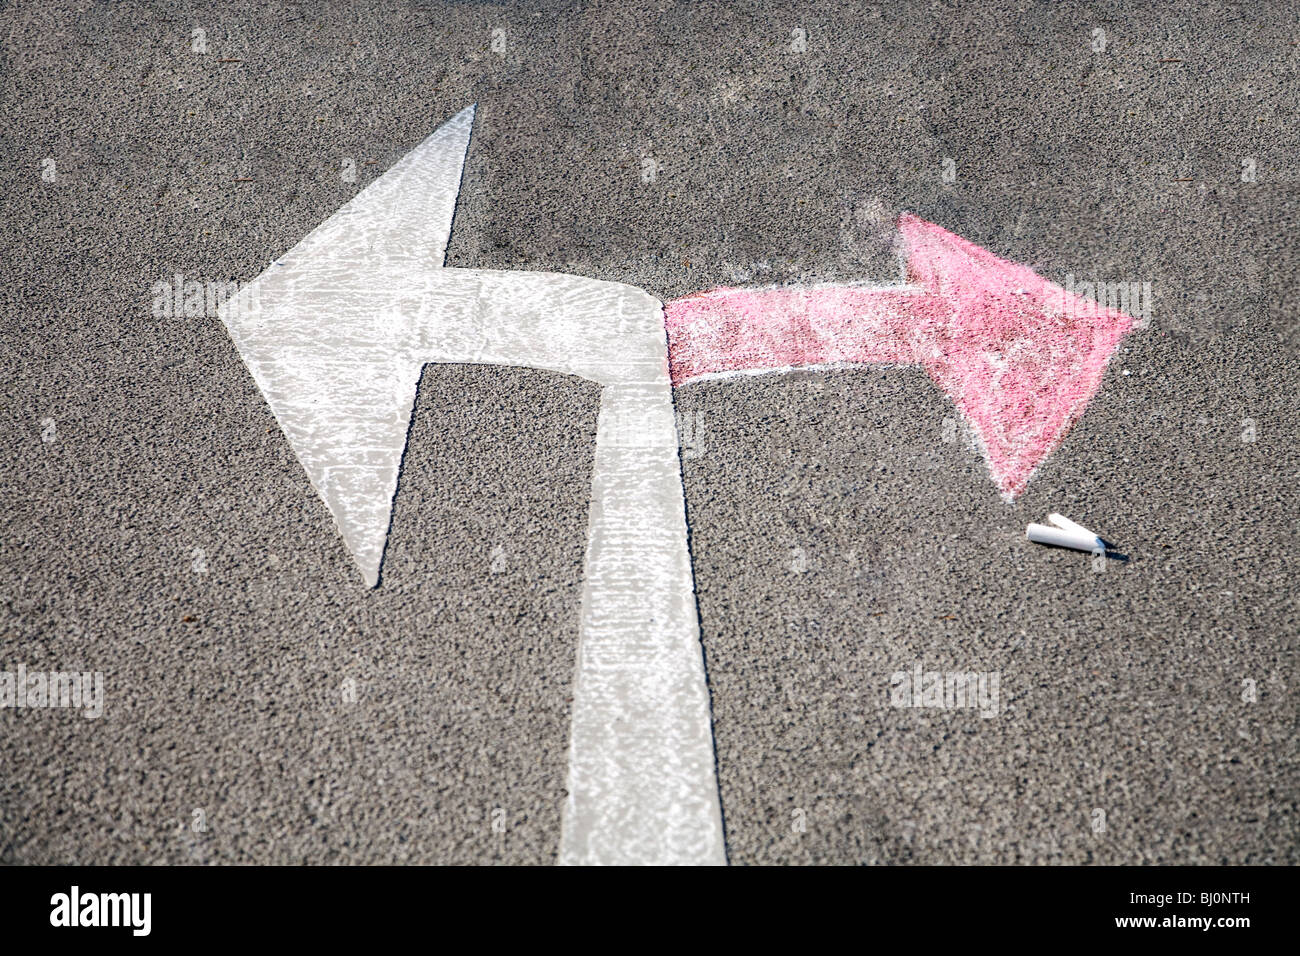 red arrow drawn on road in opposite direction of road sign - Stock Image